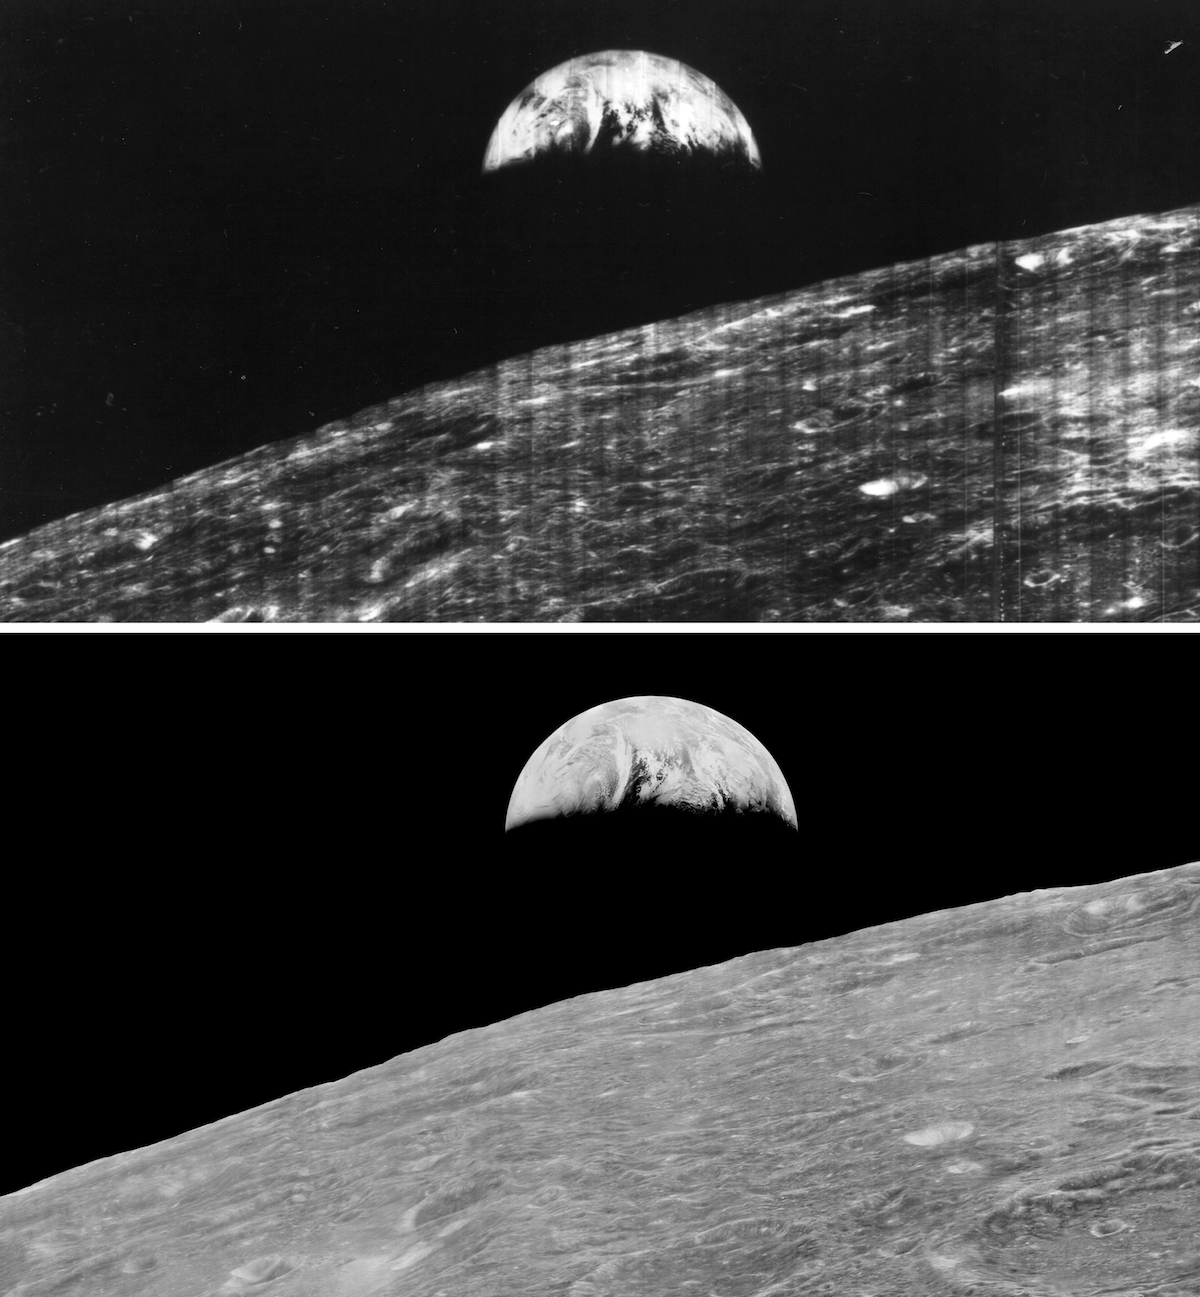 earth rising over lunar horizon in two images, the original and the smoother, restored version